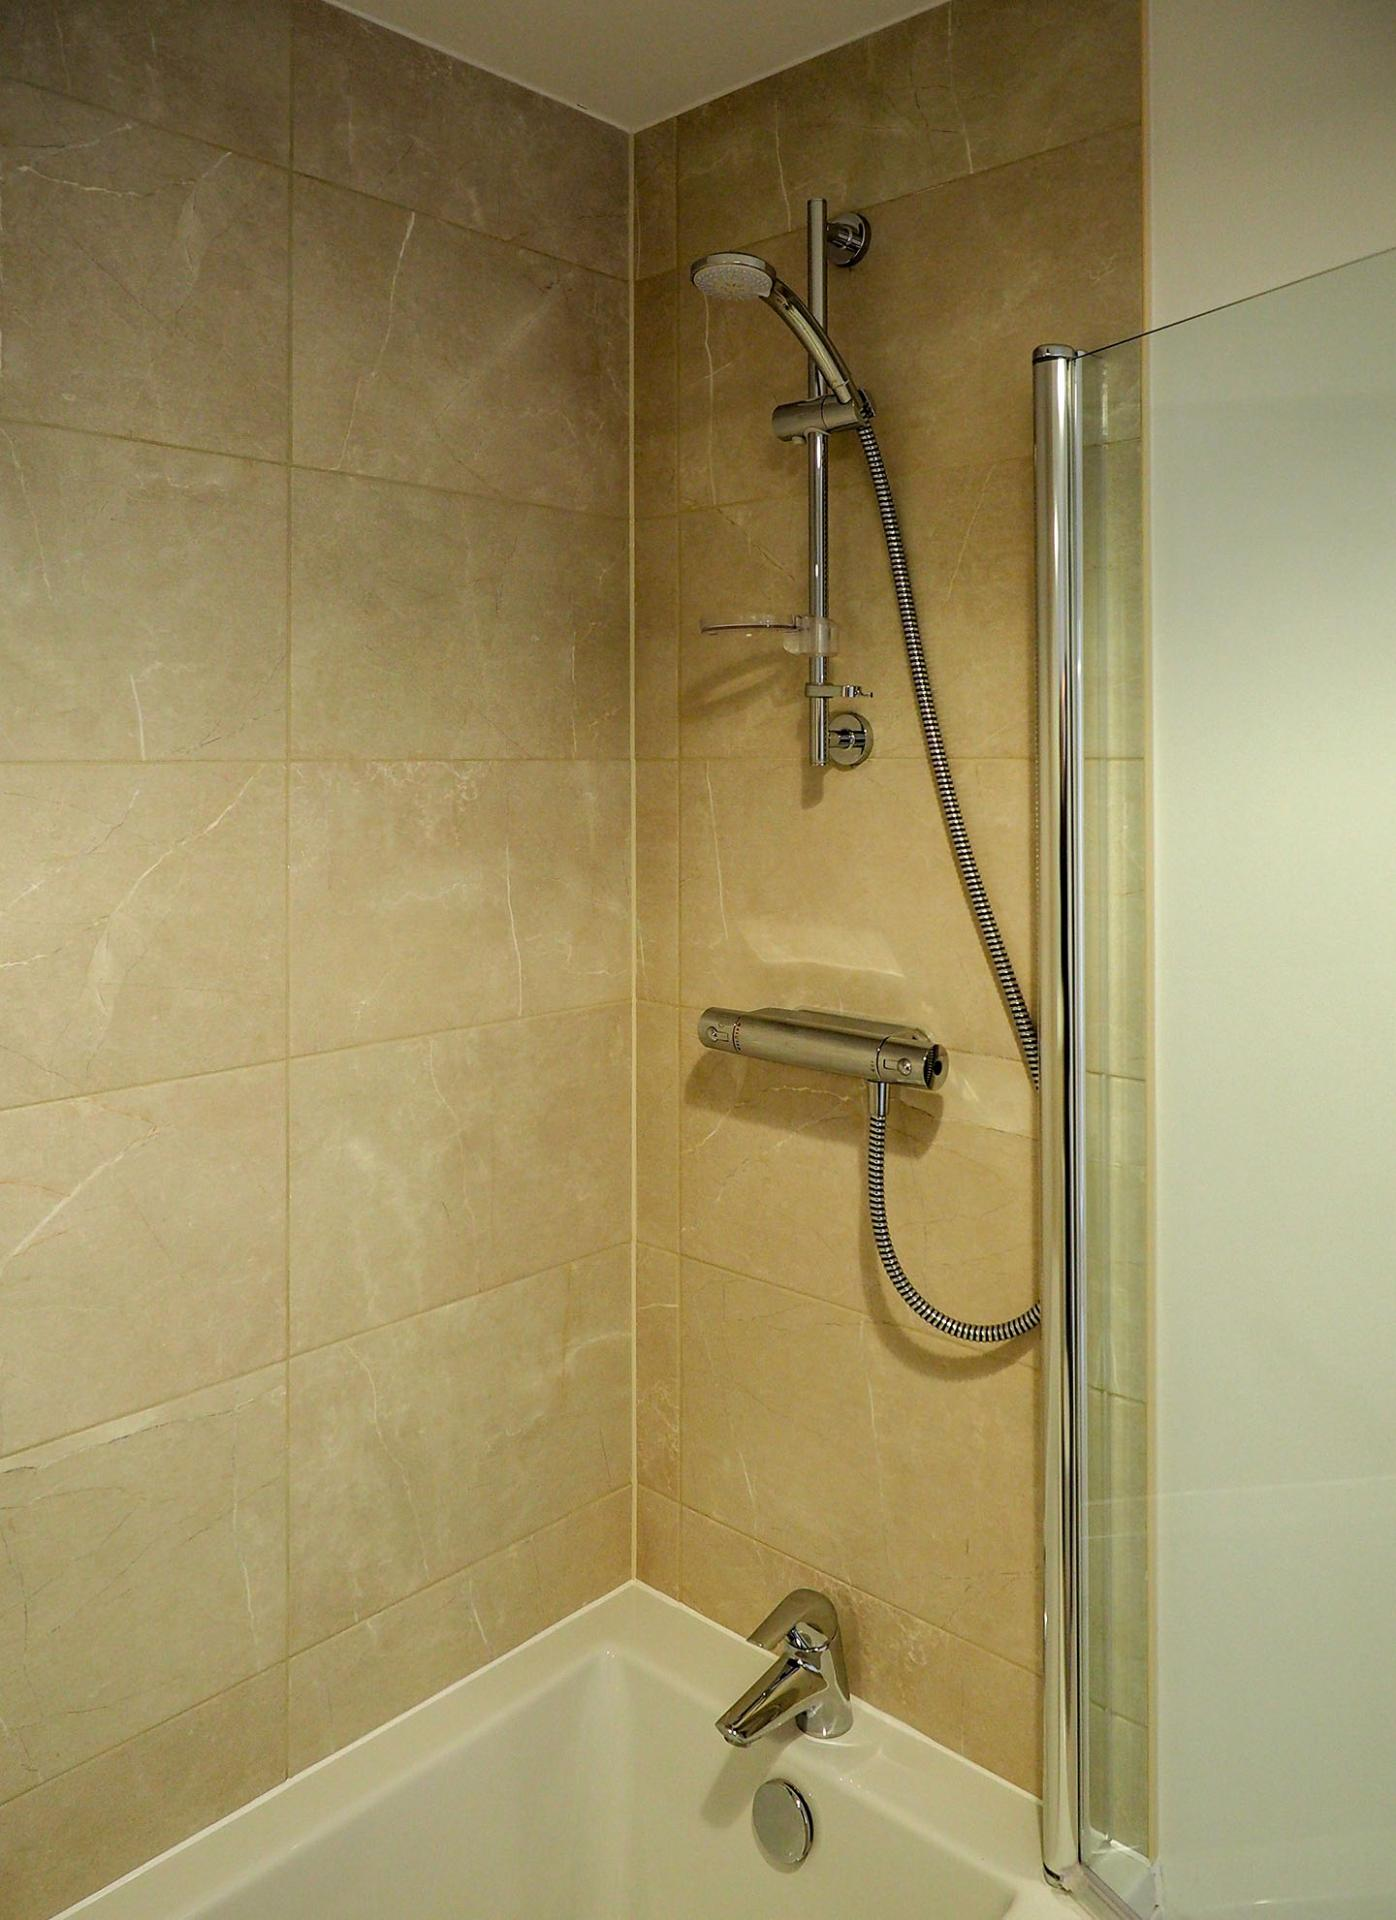 Shower at Wessex Court Serviced Apartment